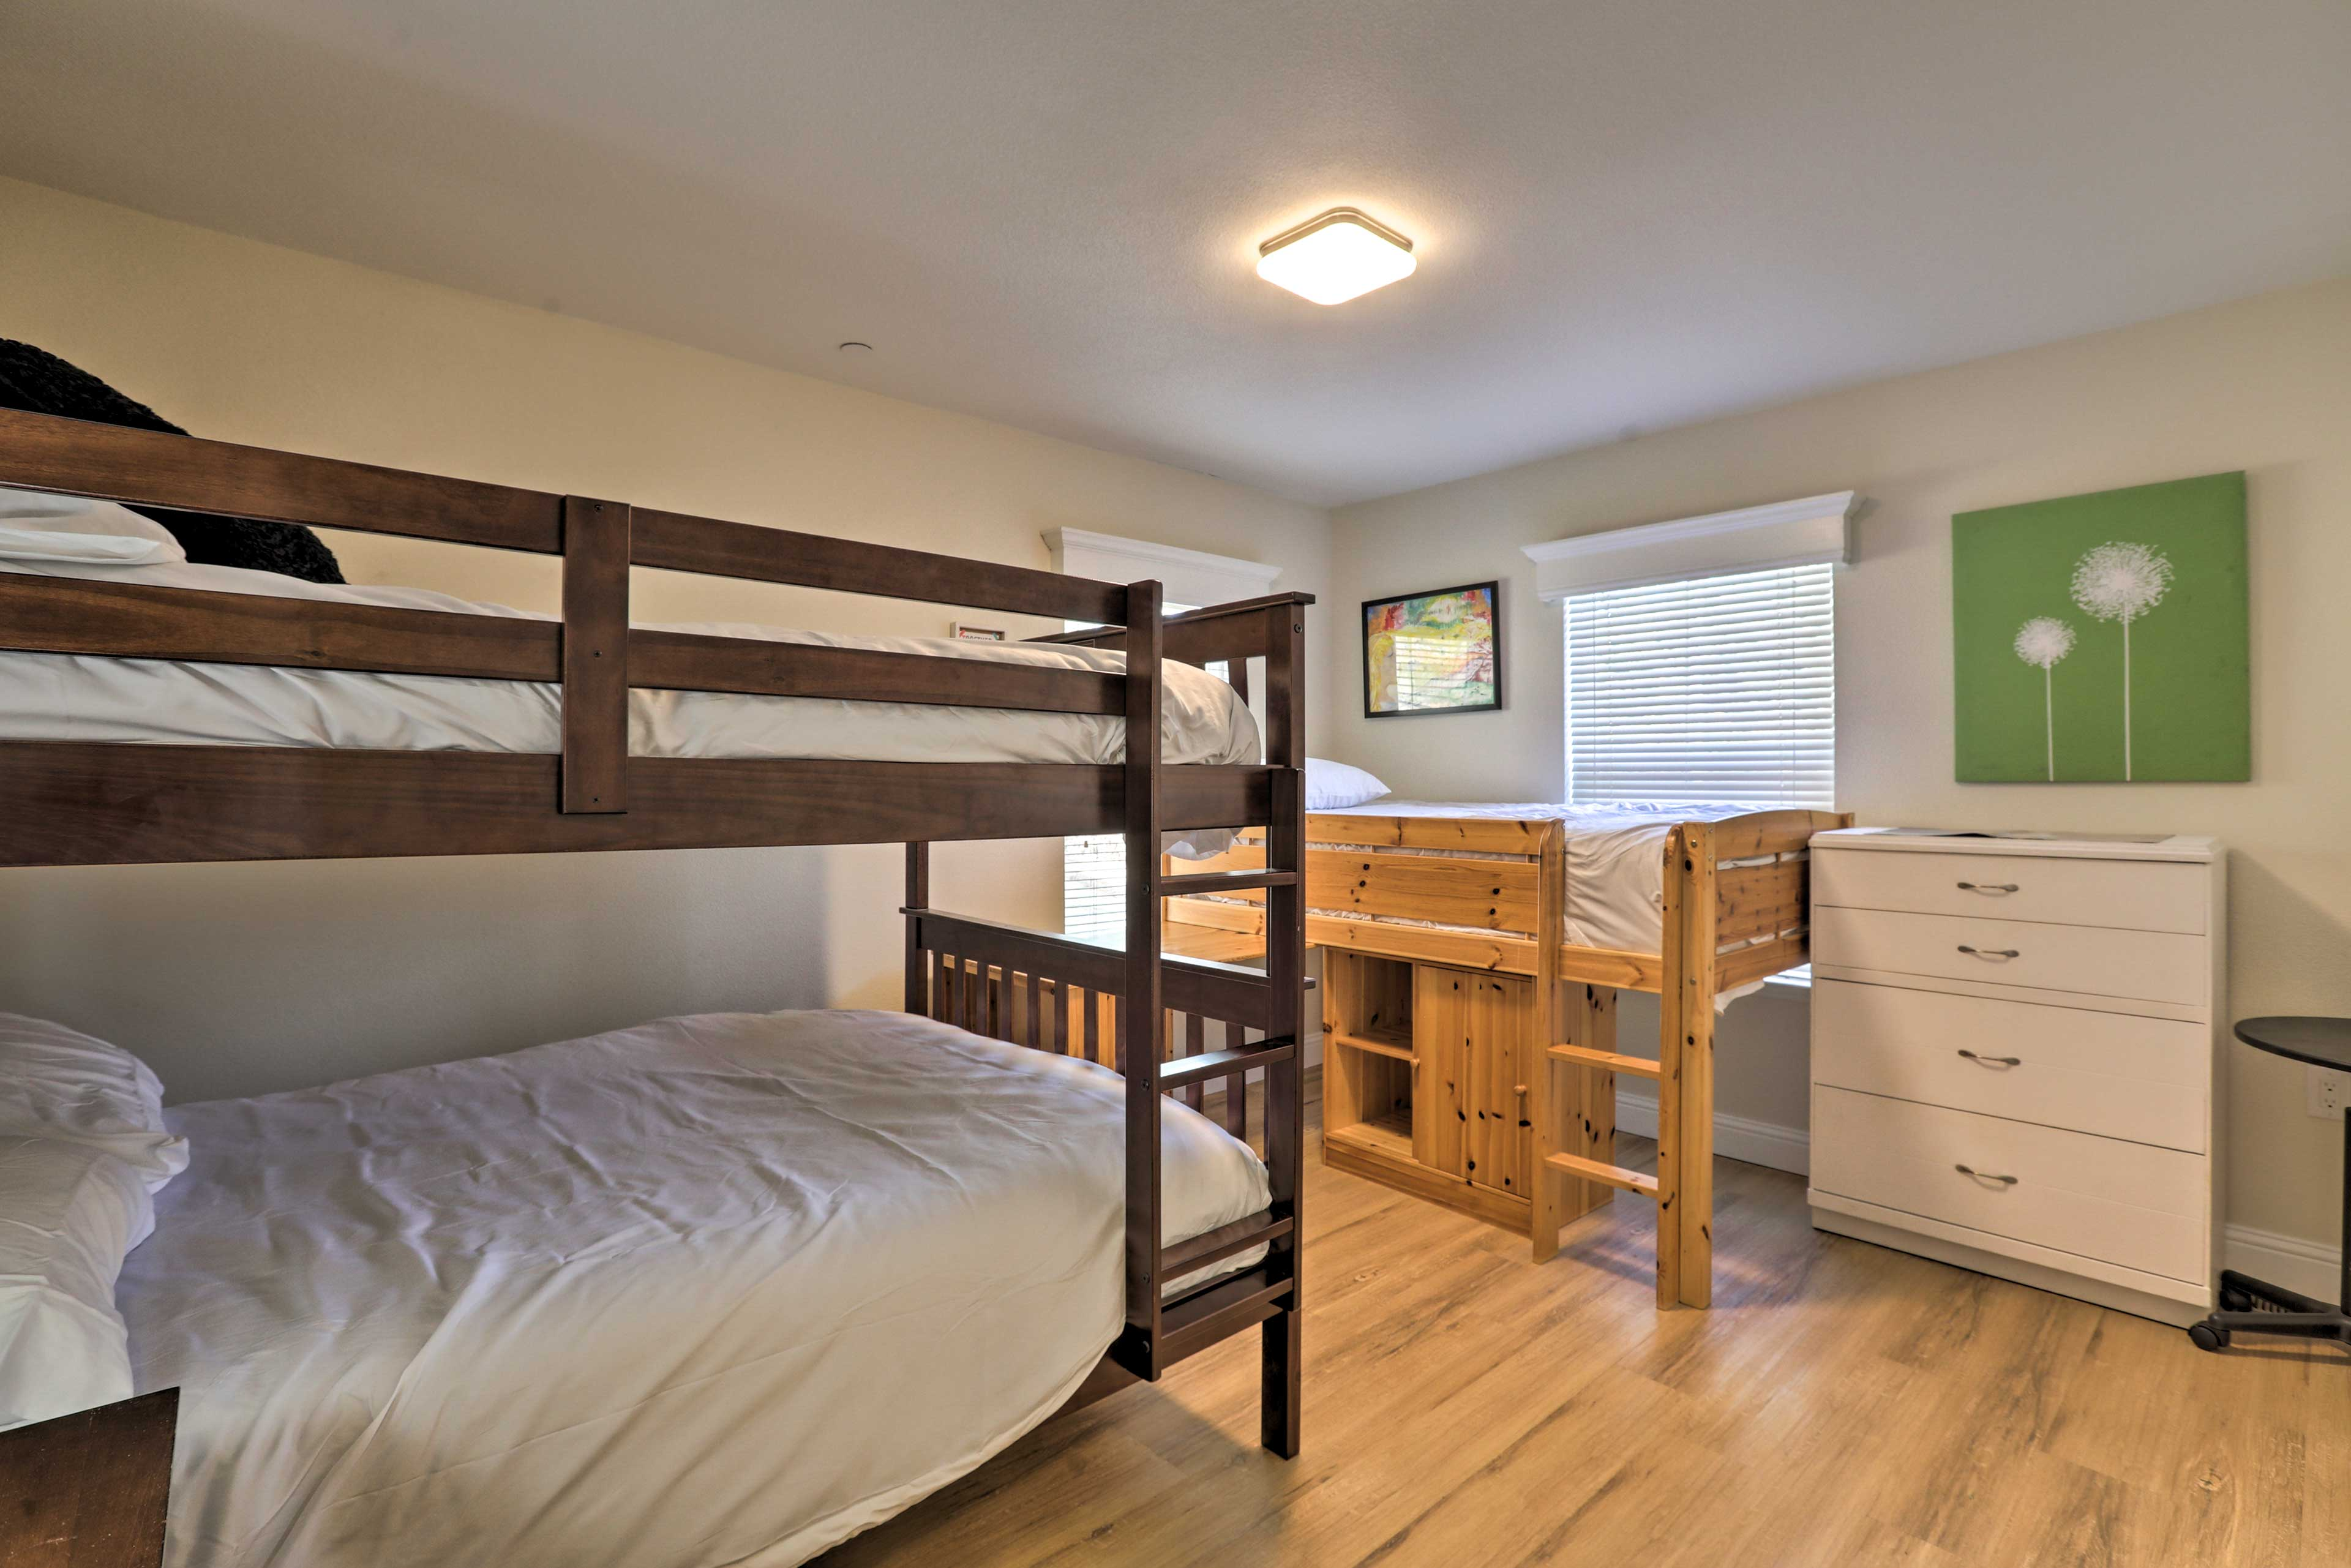 Kids and friends alike will enjoy sharing this bunk room.